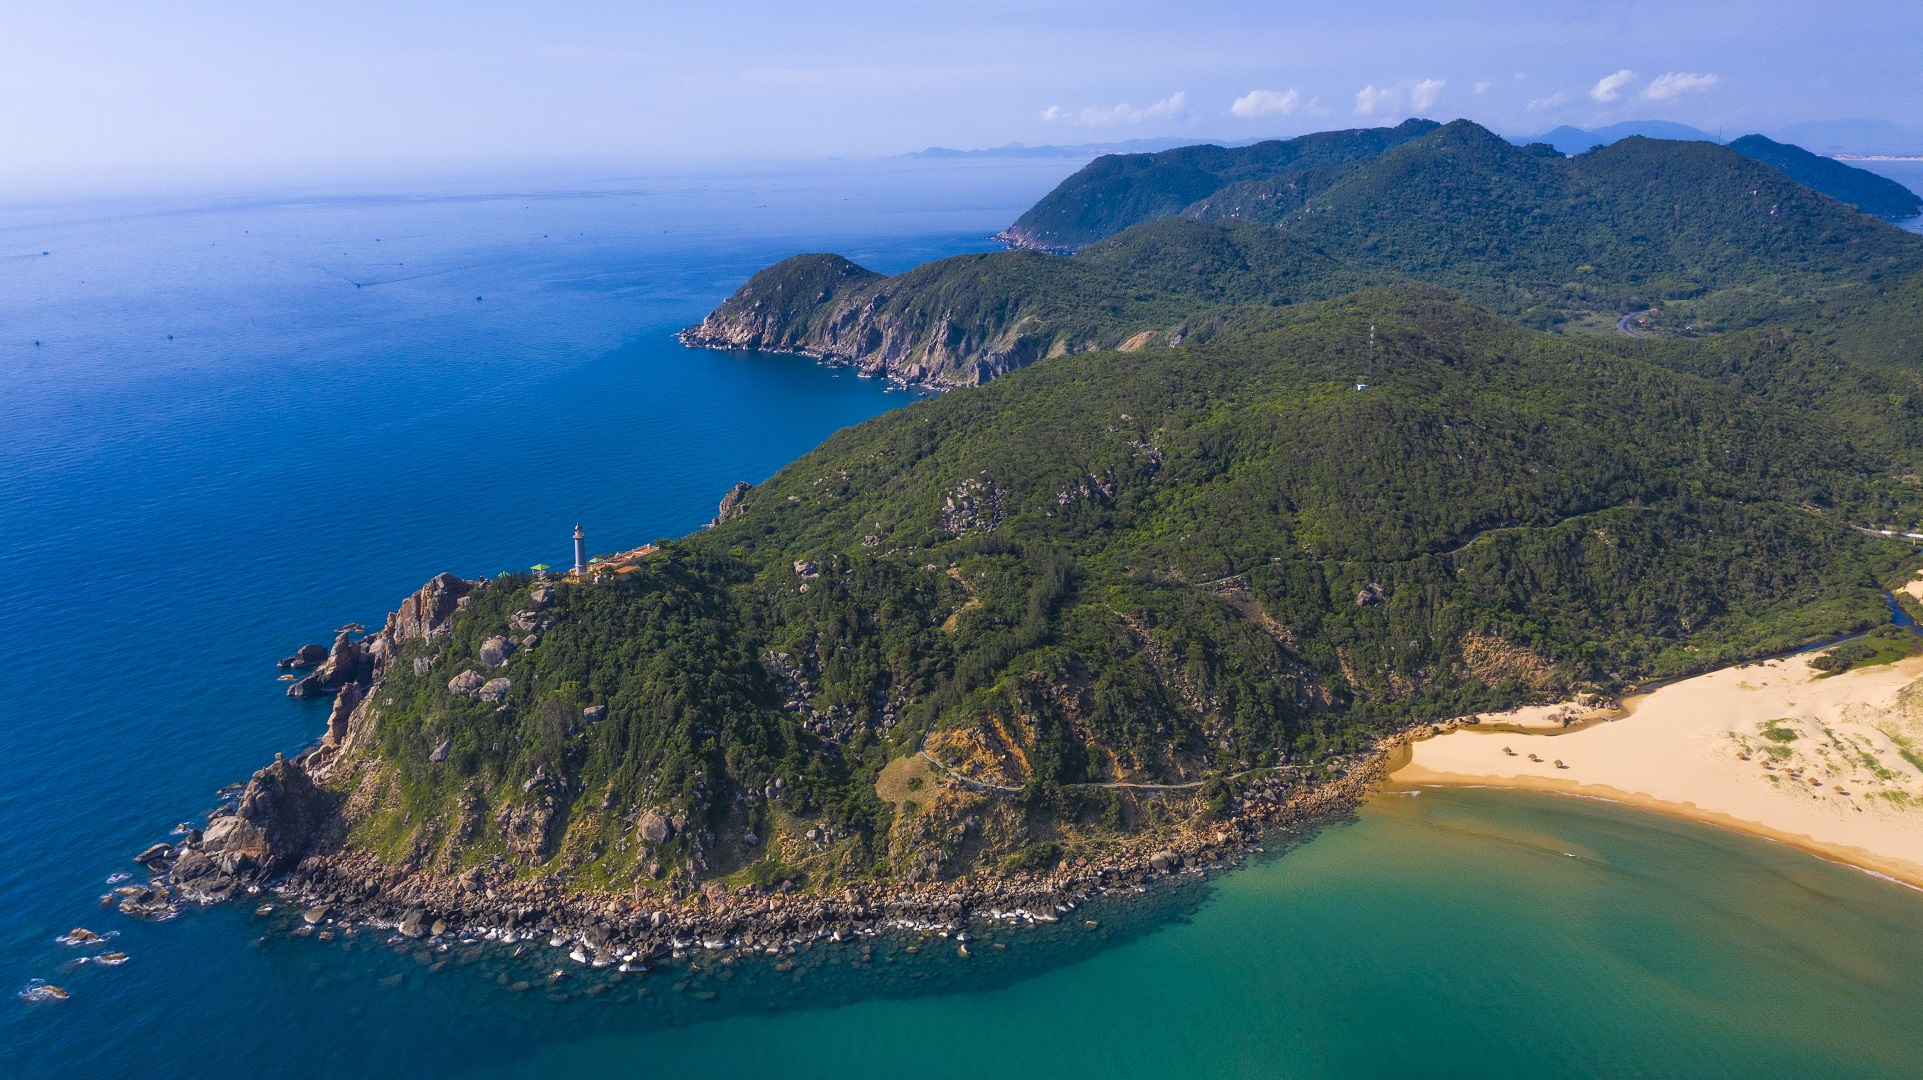 An aerial photo captures the central province of Phu Yen's Dai Lanh Cape where sees the first sunlight of the day in Vietnam. Photo: Quang Dinh / Tuoi Tre News